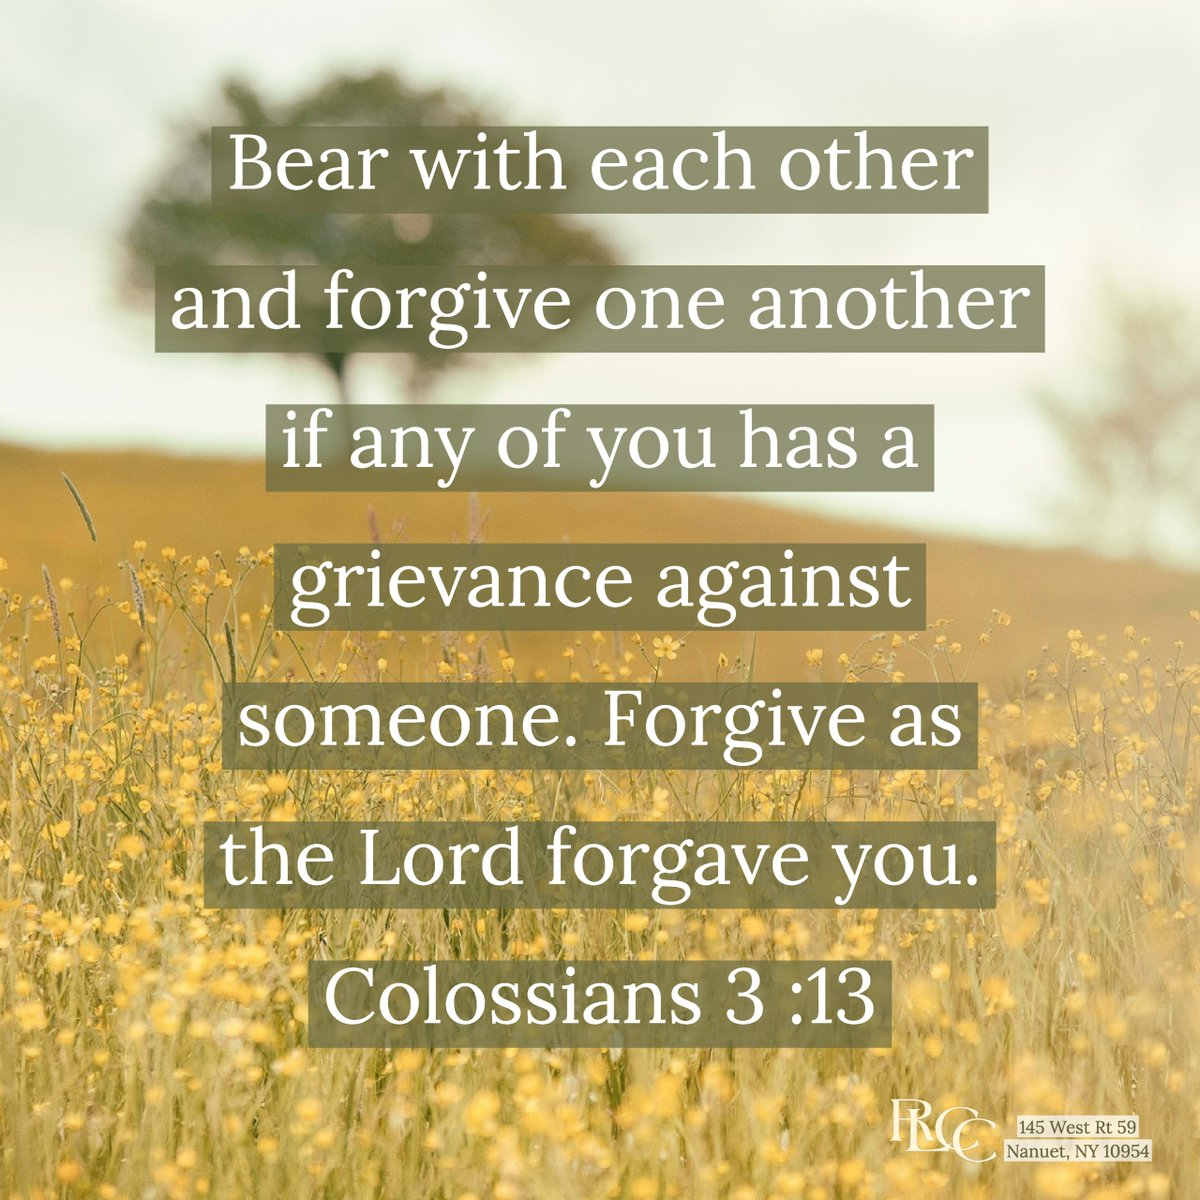 #VOTD --Bear with each other and forgive one another if any of you has a grievance against someone. Forgive as the Lord forgave you.  ~Colossians 3:13 . . . #forgiveness #forgive #Christ #ThursdayThoughts  #blessings #verseoftheday #bibleverse #Bible #Jesus #WWJD